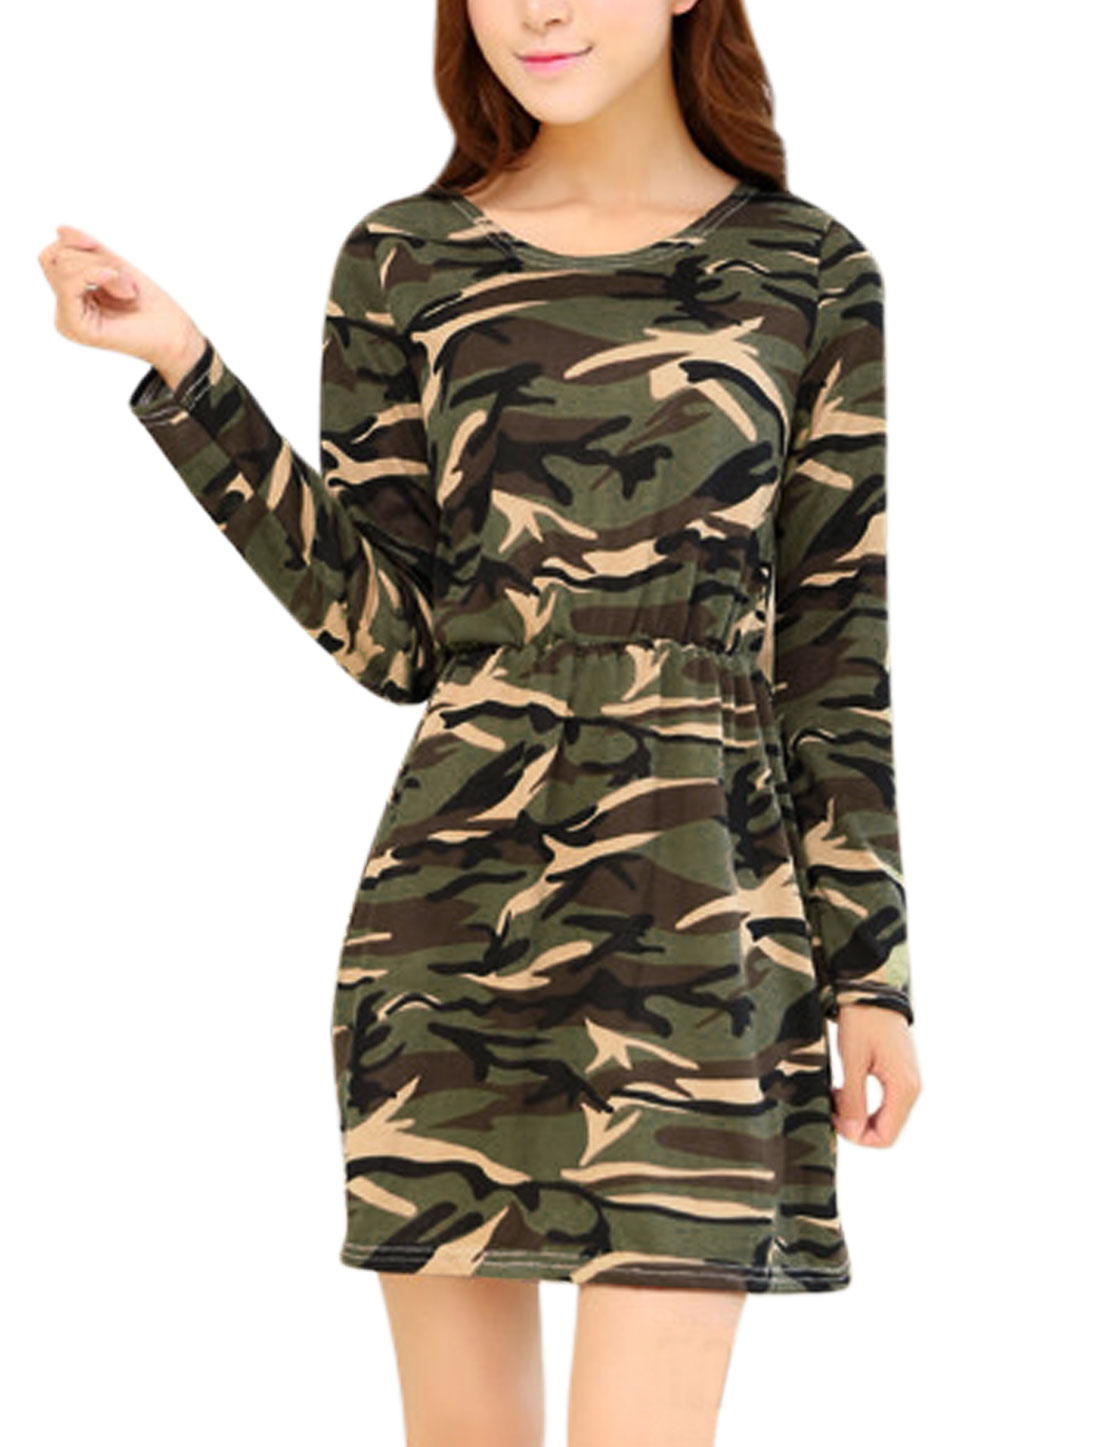 Women Chic Allover Camouflage Print A Line Unlined Dress Beige Army Green XS